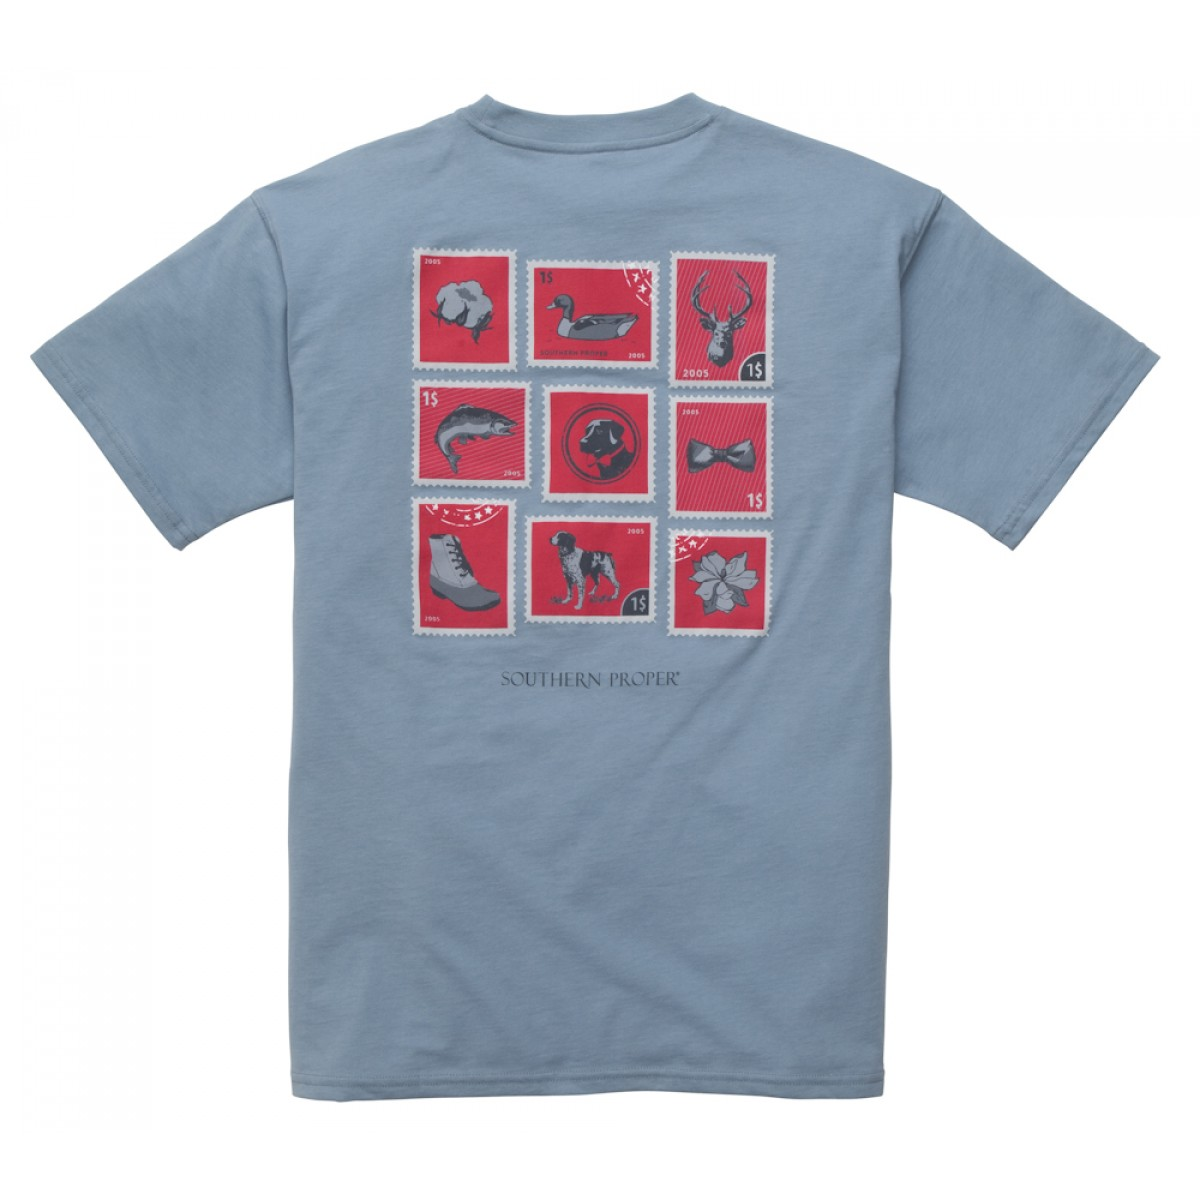 Southern Stamp Tee: Faded Blue Short Sleeve